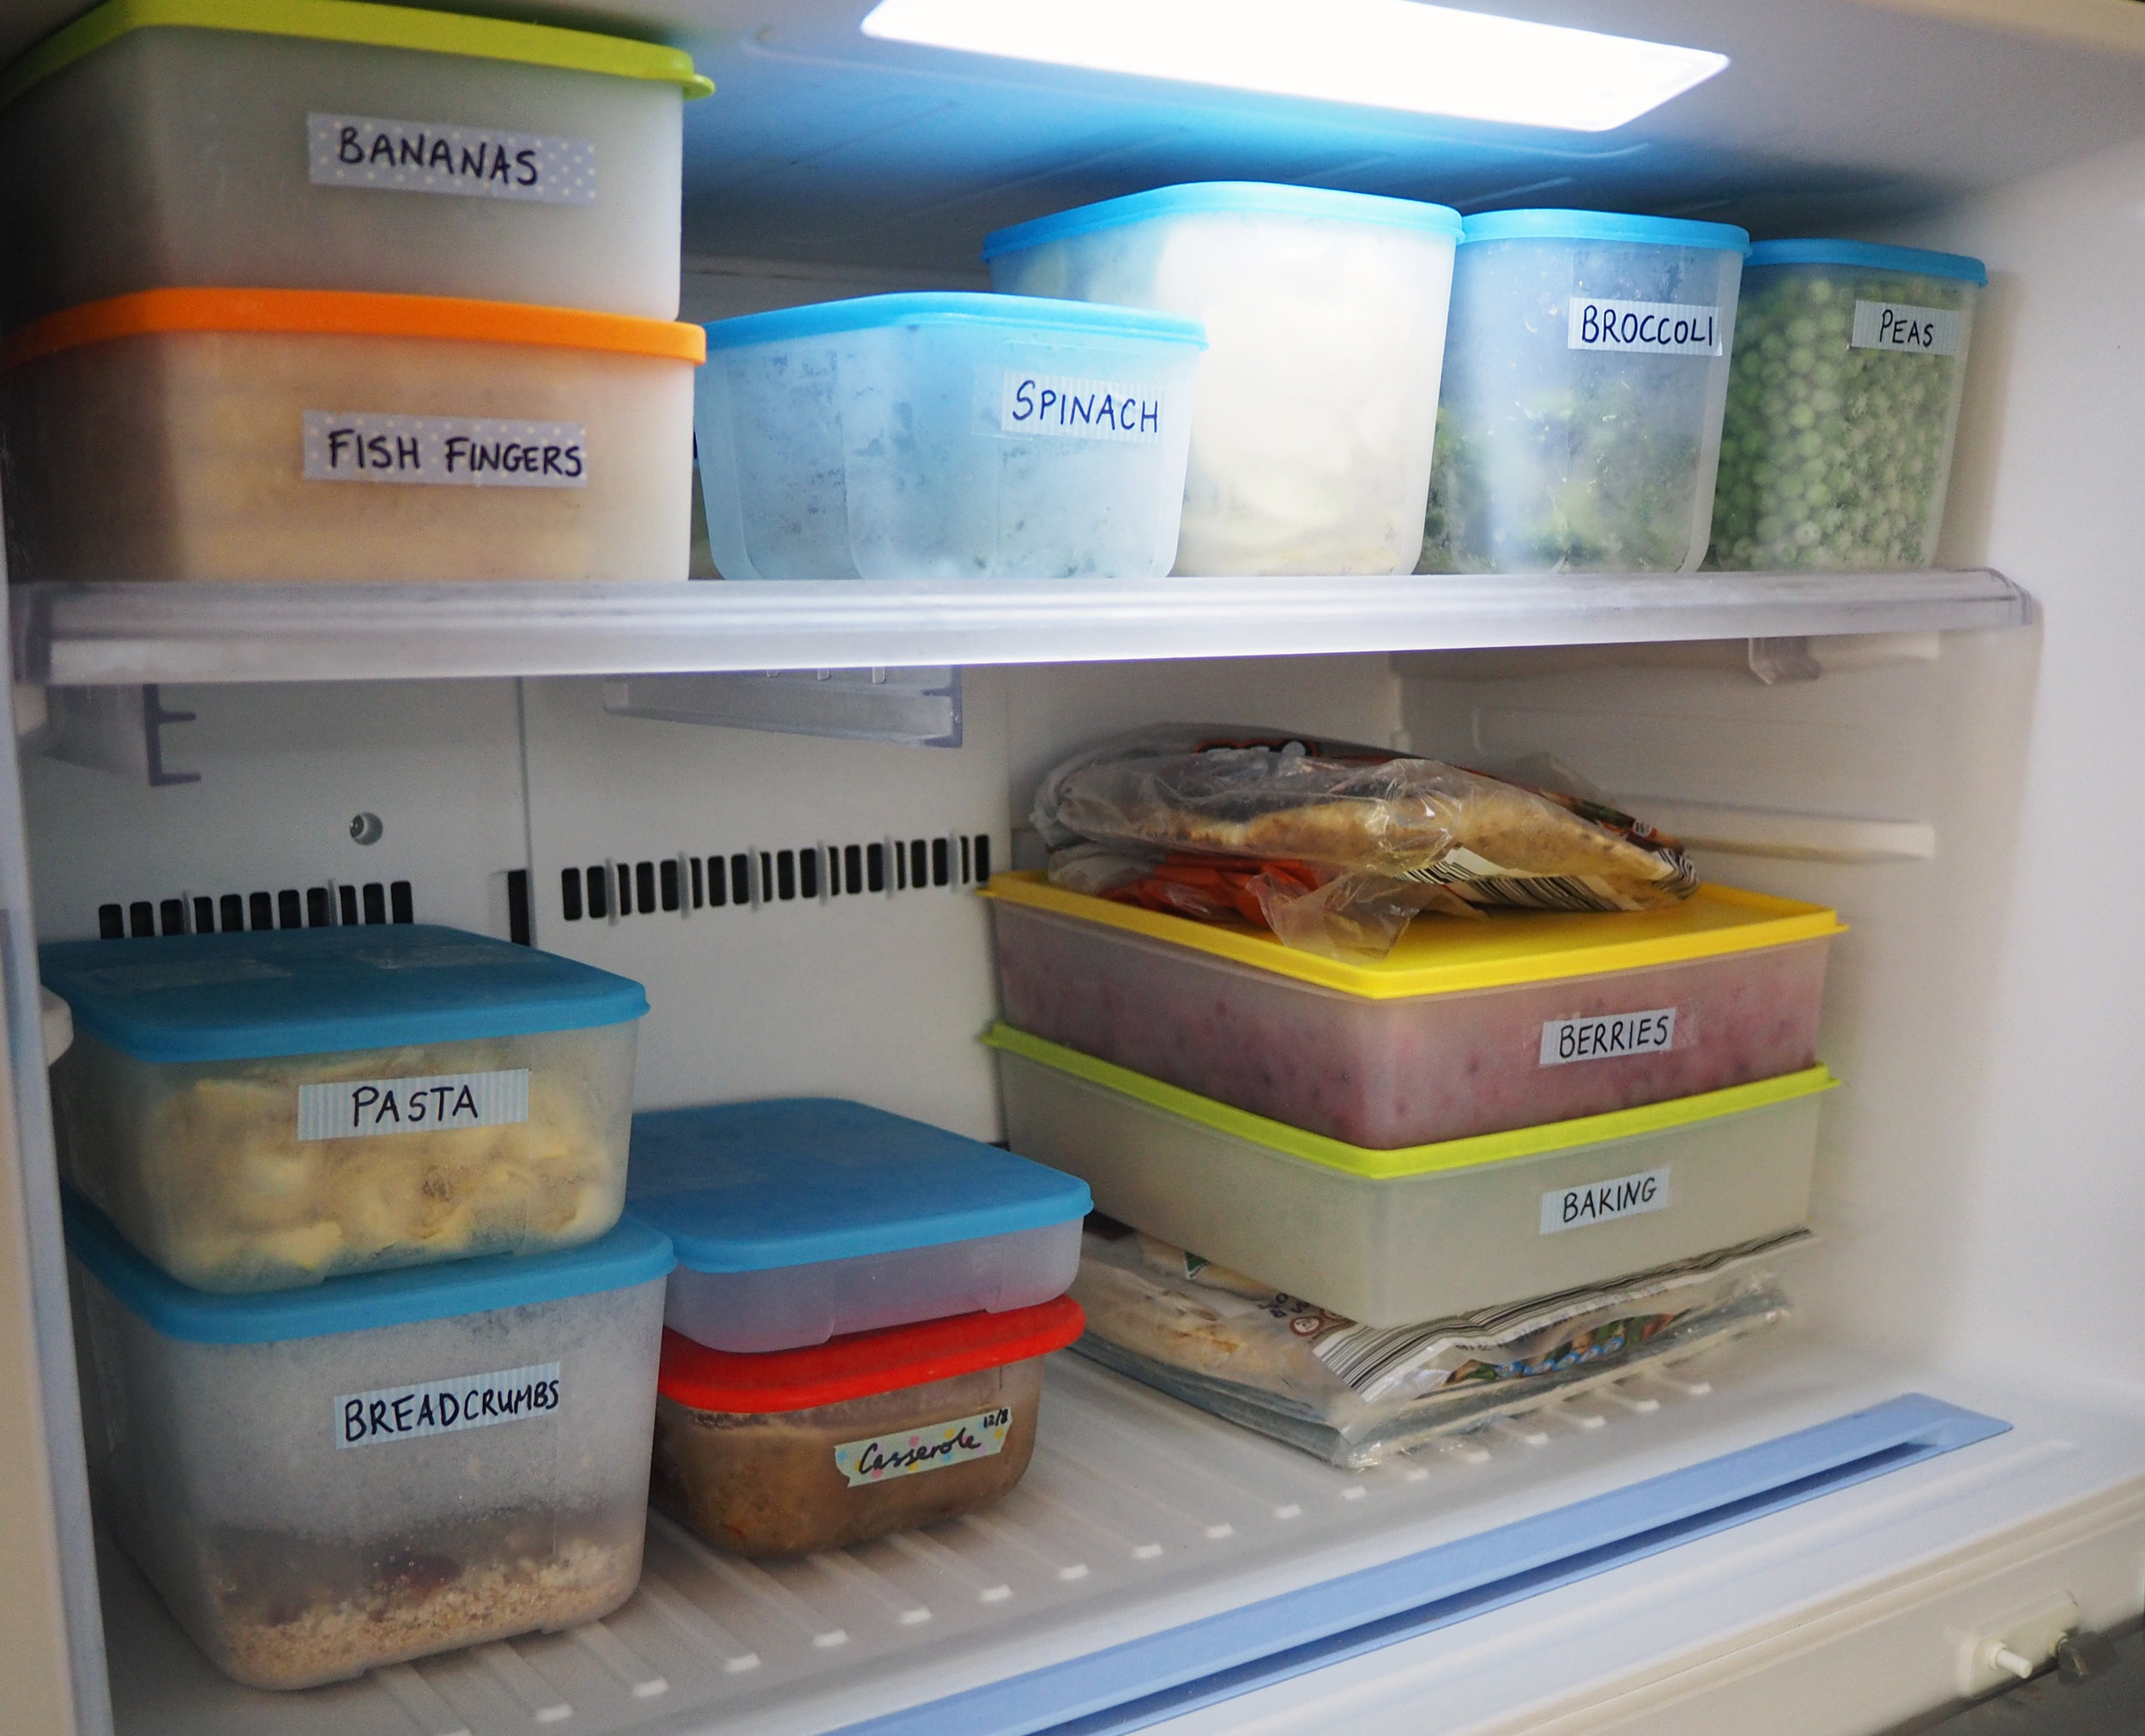 Using washi tape labels to organise the freezer - The Organised You